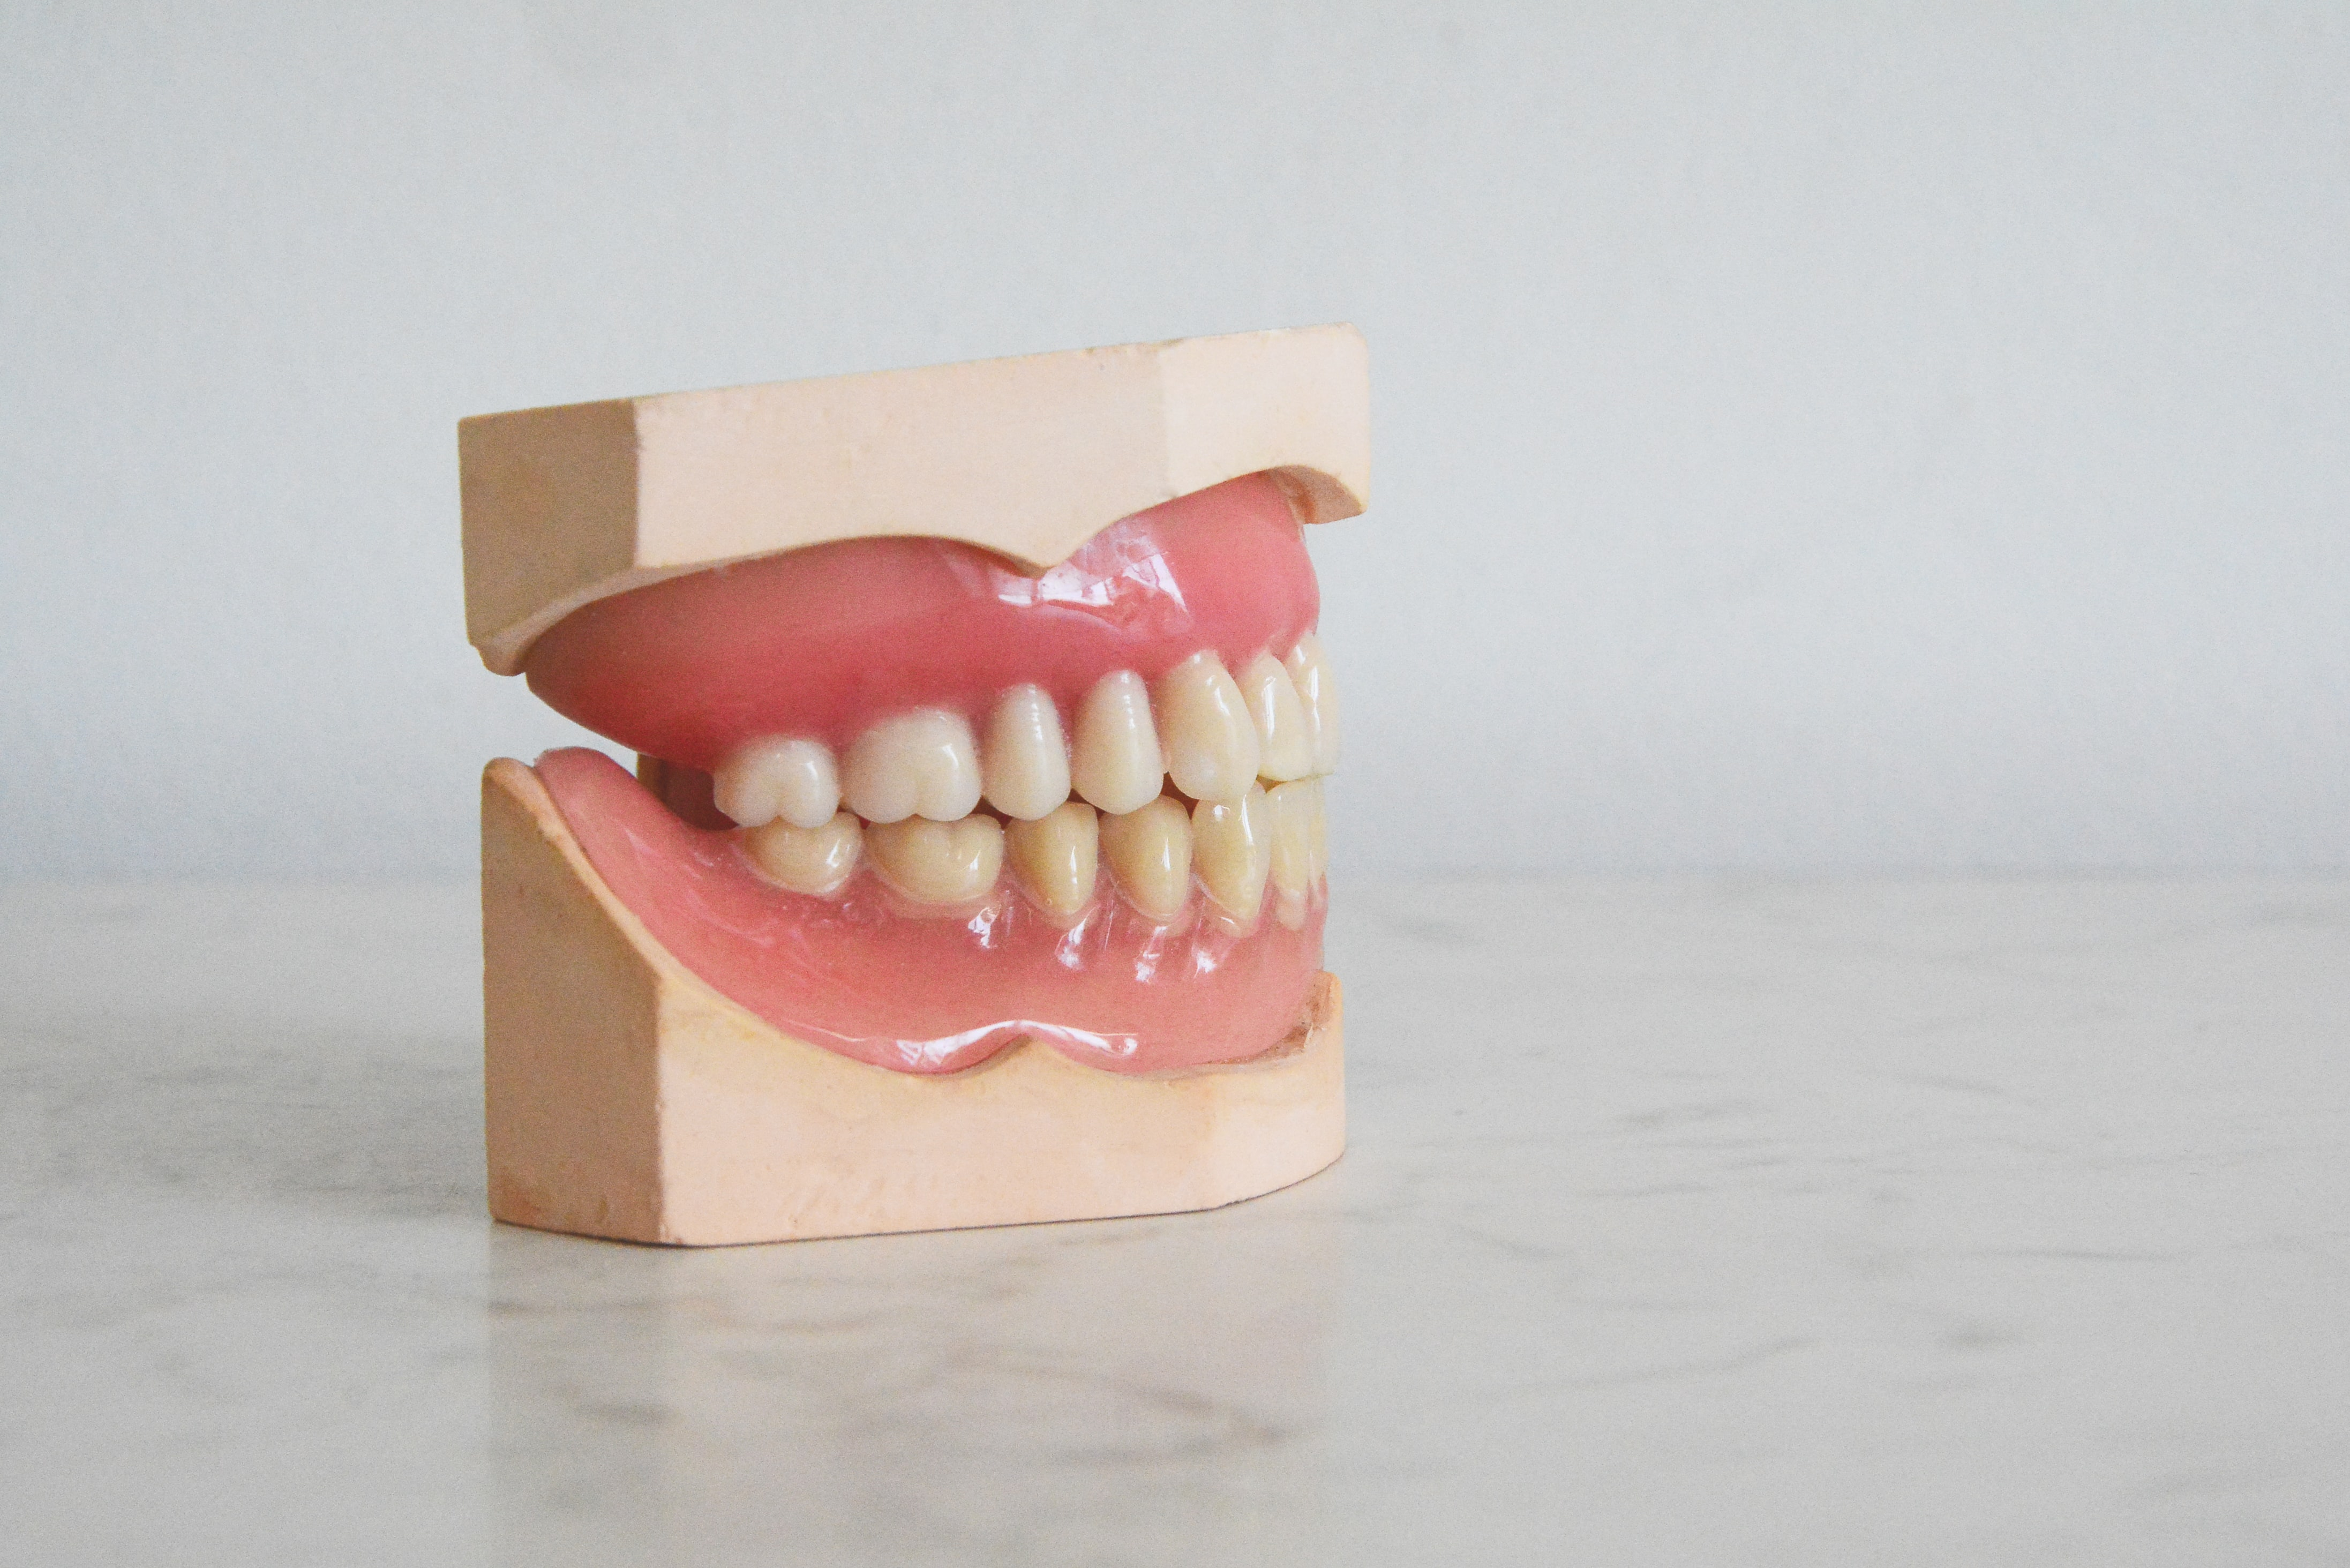 How Does Plaque Cause Gum Disease and Decay?